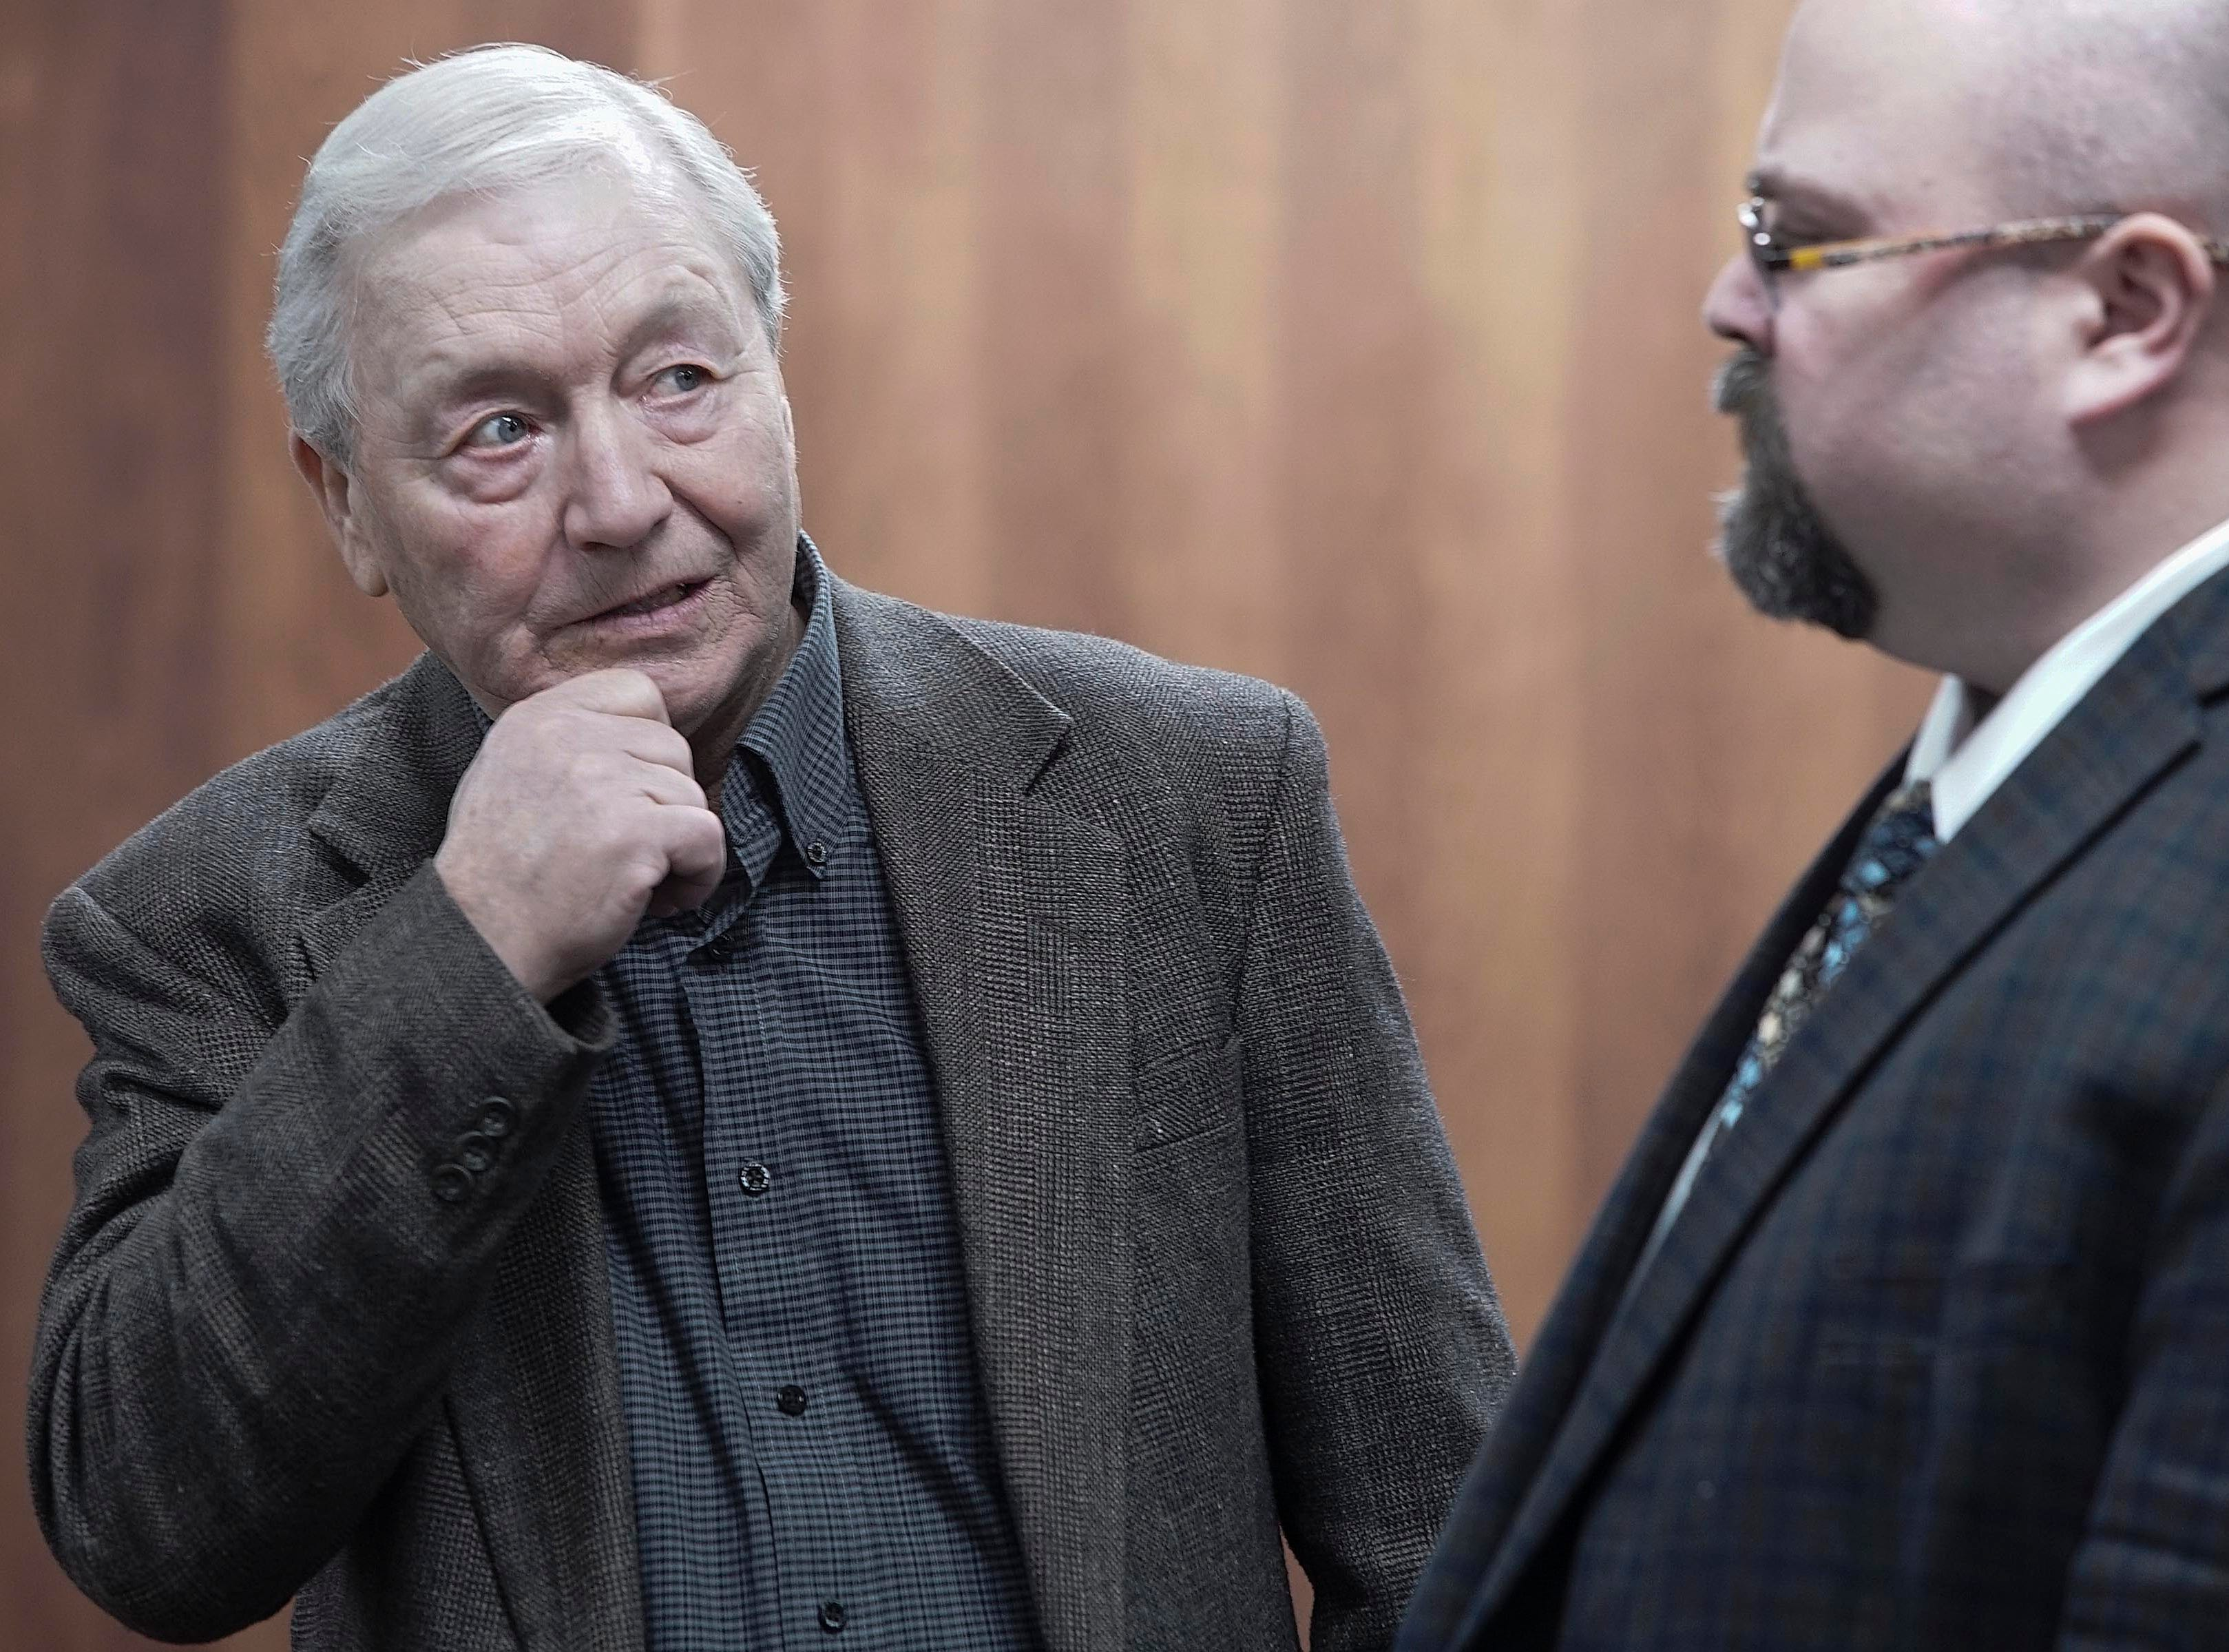 Bill Carter, 73, of Lacona, Iowa, talks with Marion County Attorney Ed Bull on Thursday, March 14, 2019, at the murder trial of his son, Jason Carter, at the Pottawattamie County Courthouse in Council Bluffs. Jason Carter is accused of fatally shooting his mother, Shirley Carter, in 2015 at the farm where she and Bill Carter lived.